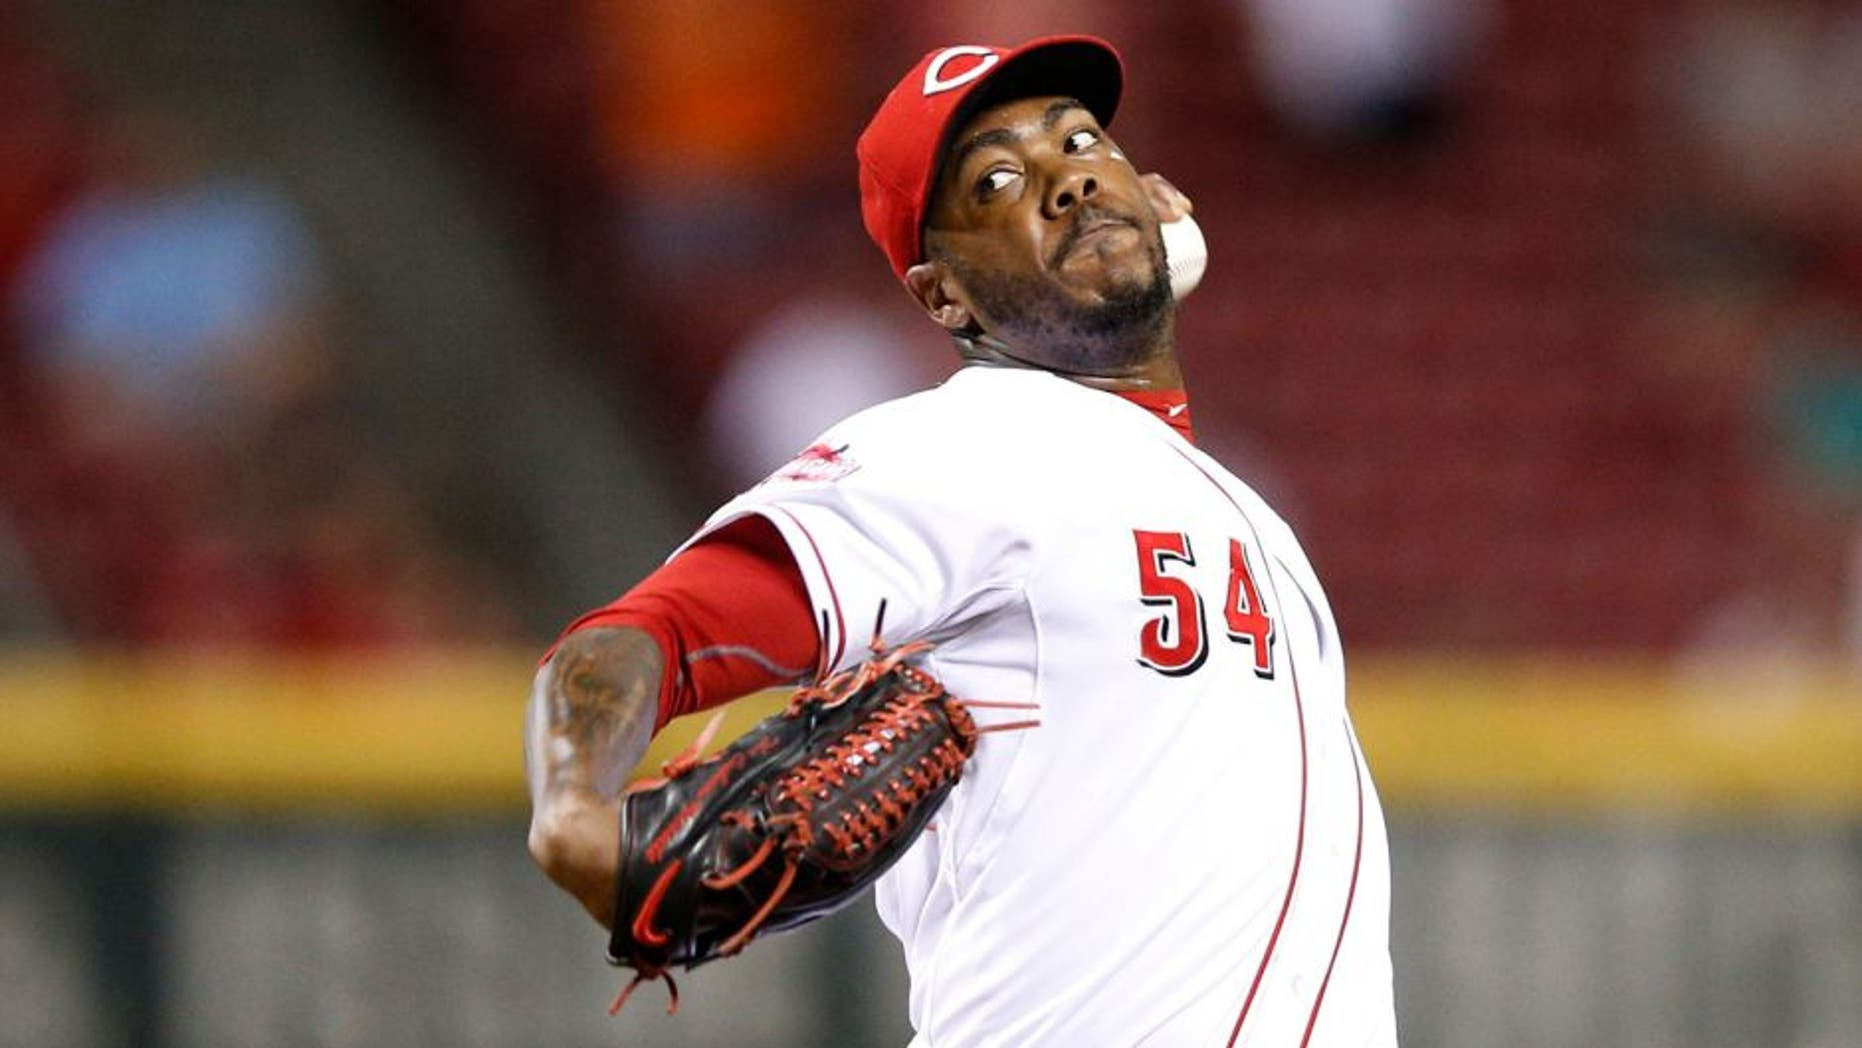 CINCINNATI, OH - AUGUST 24: Aroldis Chapman #54 of the Cincinnati Reds pitches in the ninth inning against the Detroit Tigers at Great American Ball Park on August 24, 2015 in Cincinnati, Ohio. The Reds defeated the Tigers 12-5. (Photo by Joe Robbins/Getty Images)